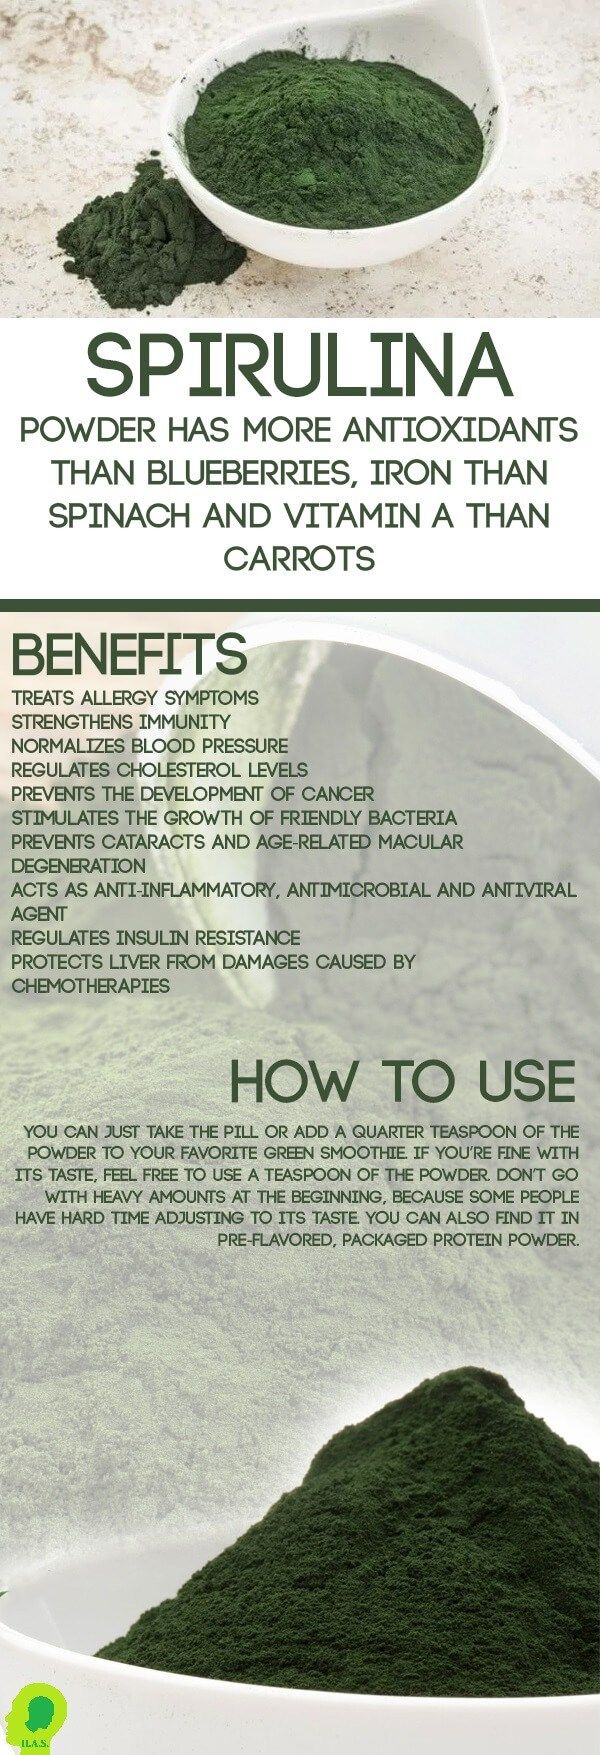 Spirulina is rich in protein, which makes it an excellent plant source of protein for vegans and vegetarians. It is rich in antioxidants, enzymes, vitamins and minerals.